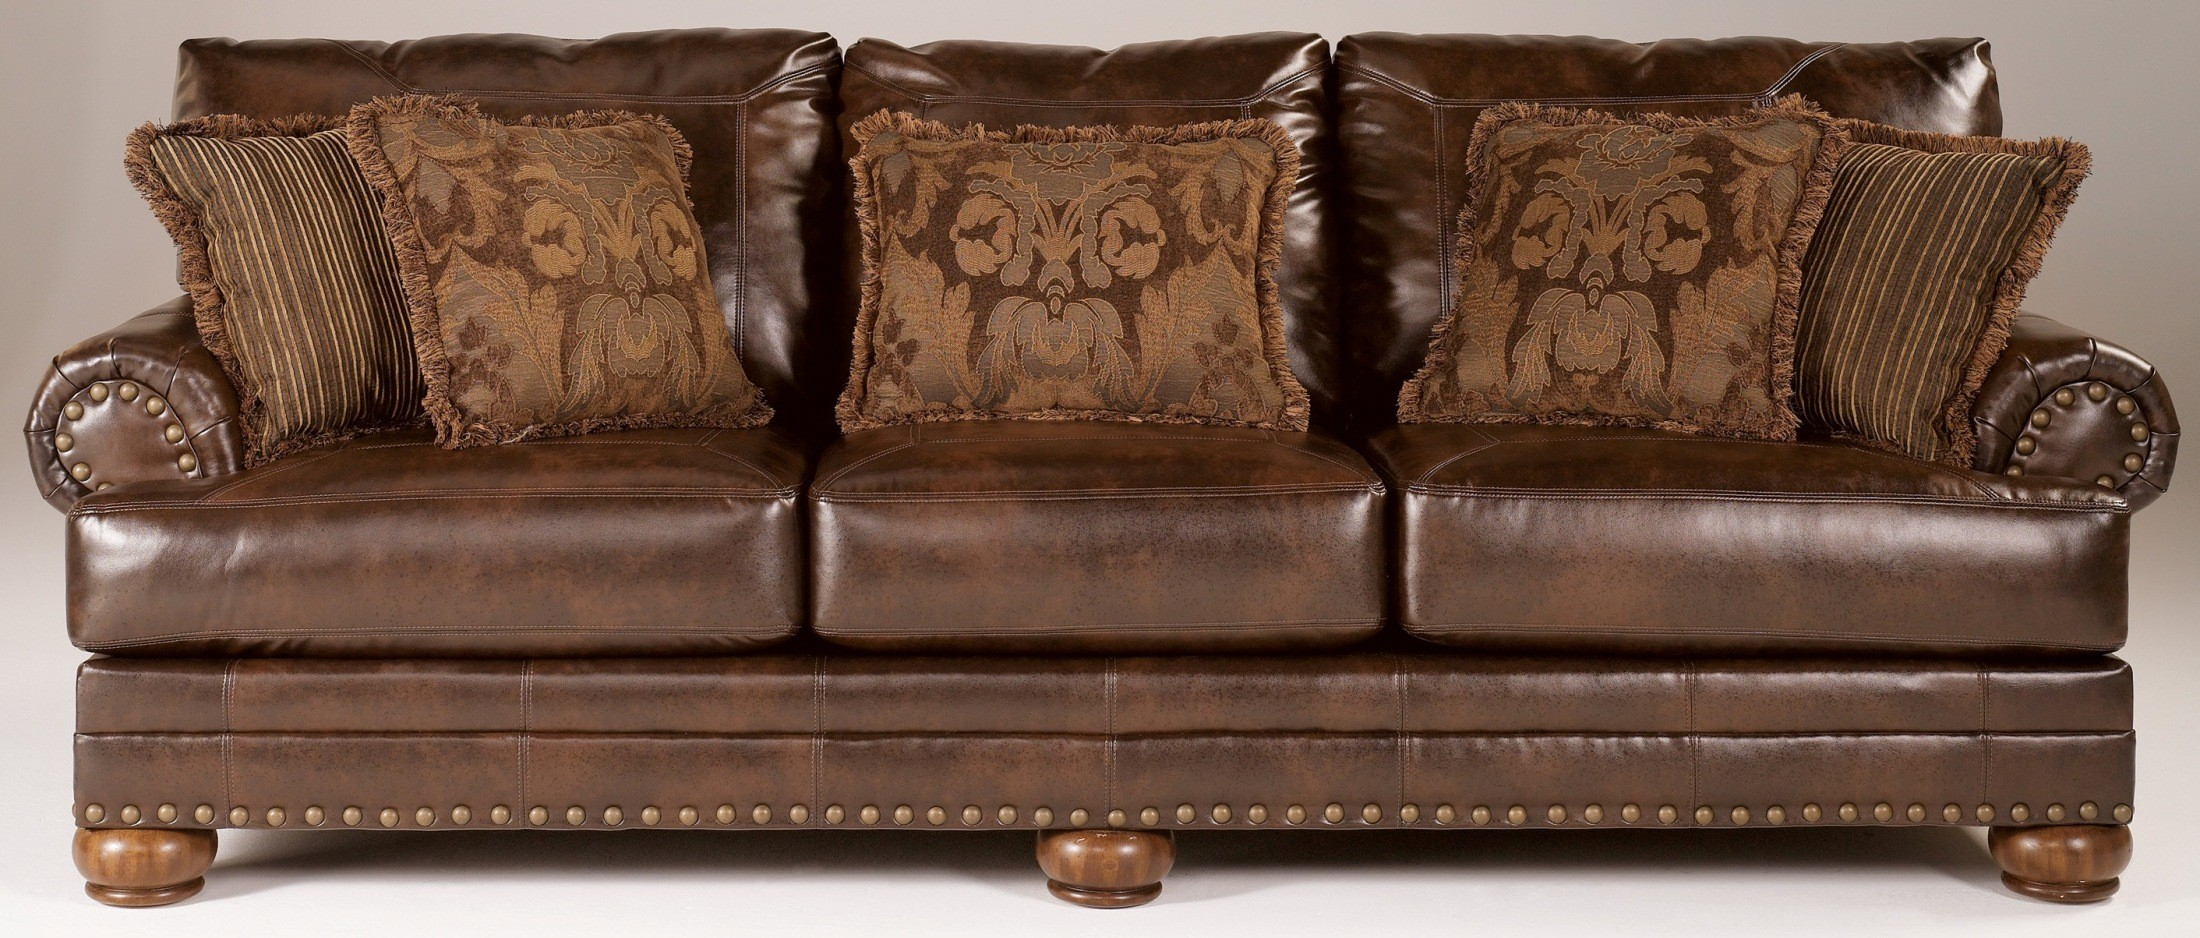 Chaling DuraBlend Antique Sofa from Ashley